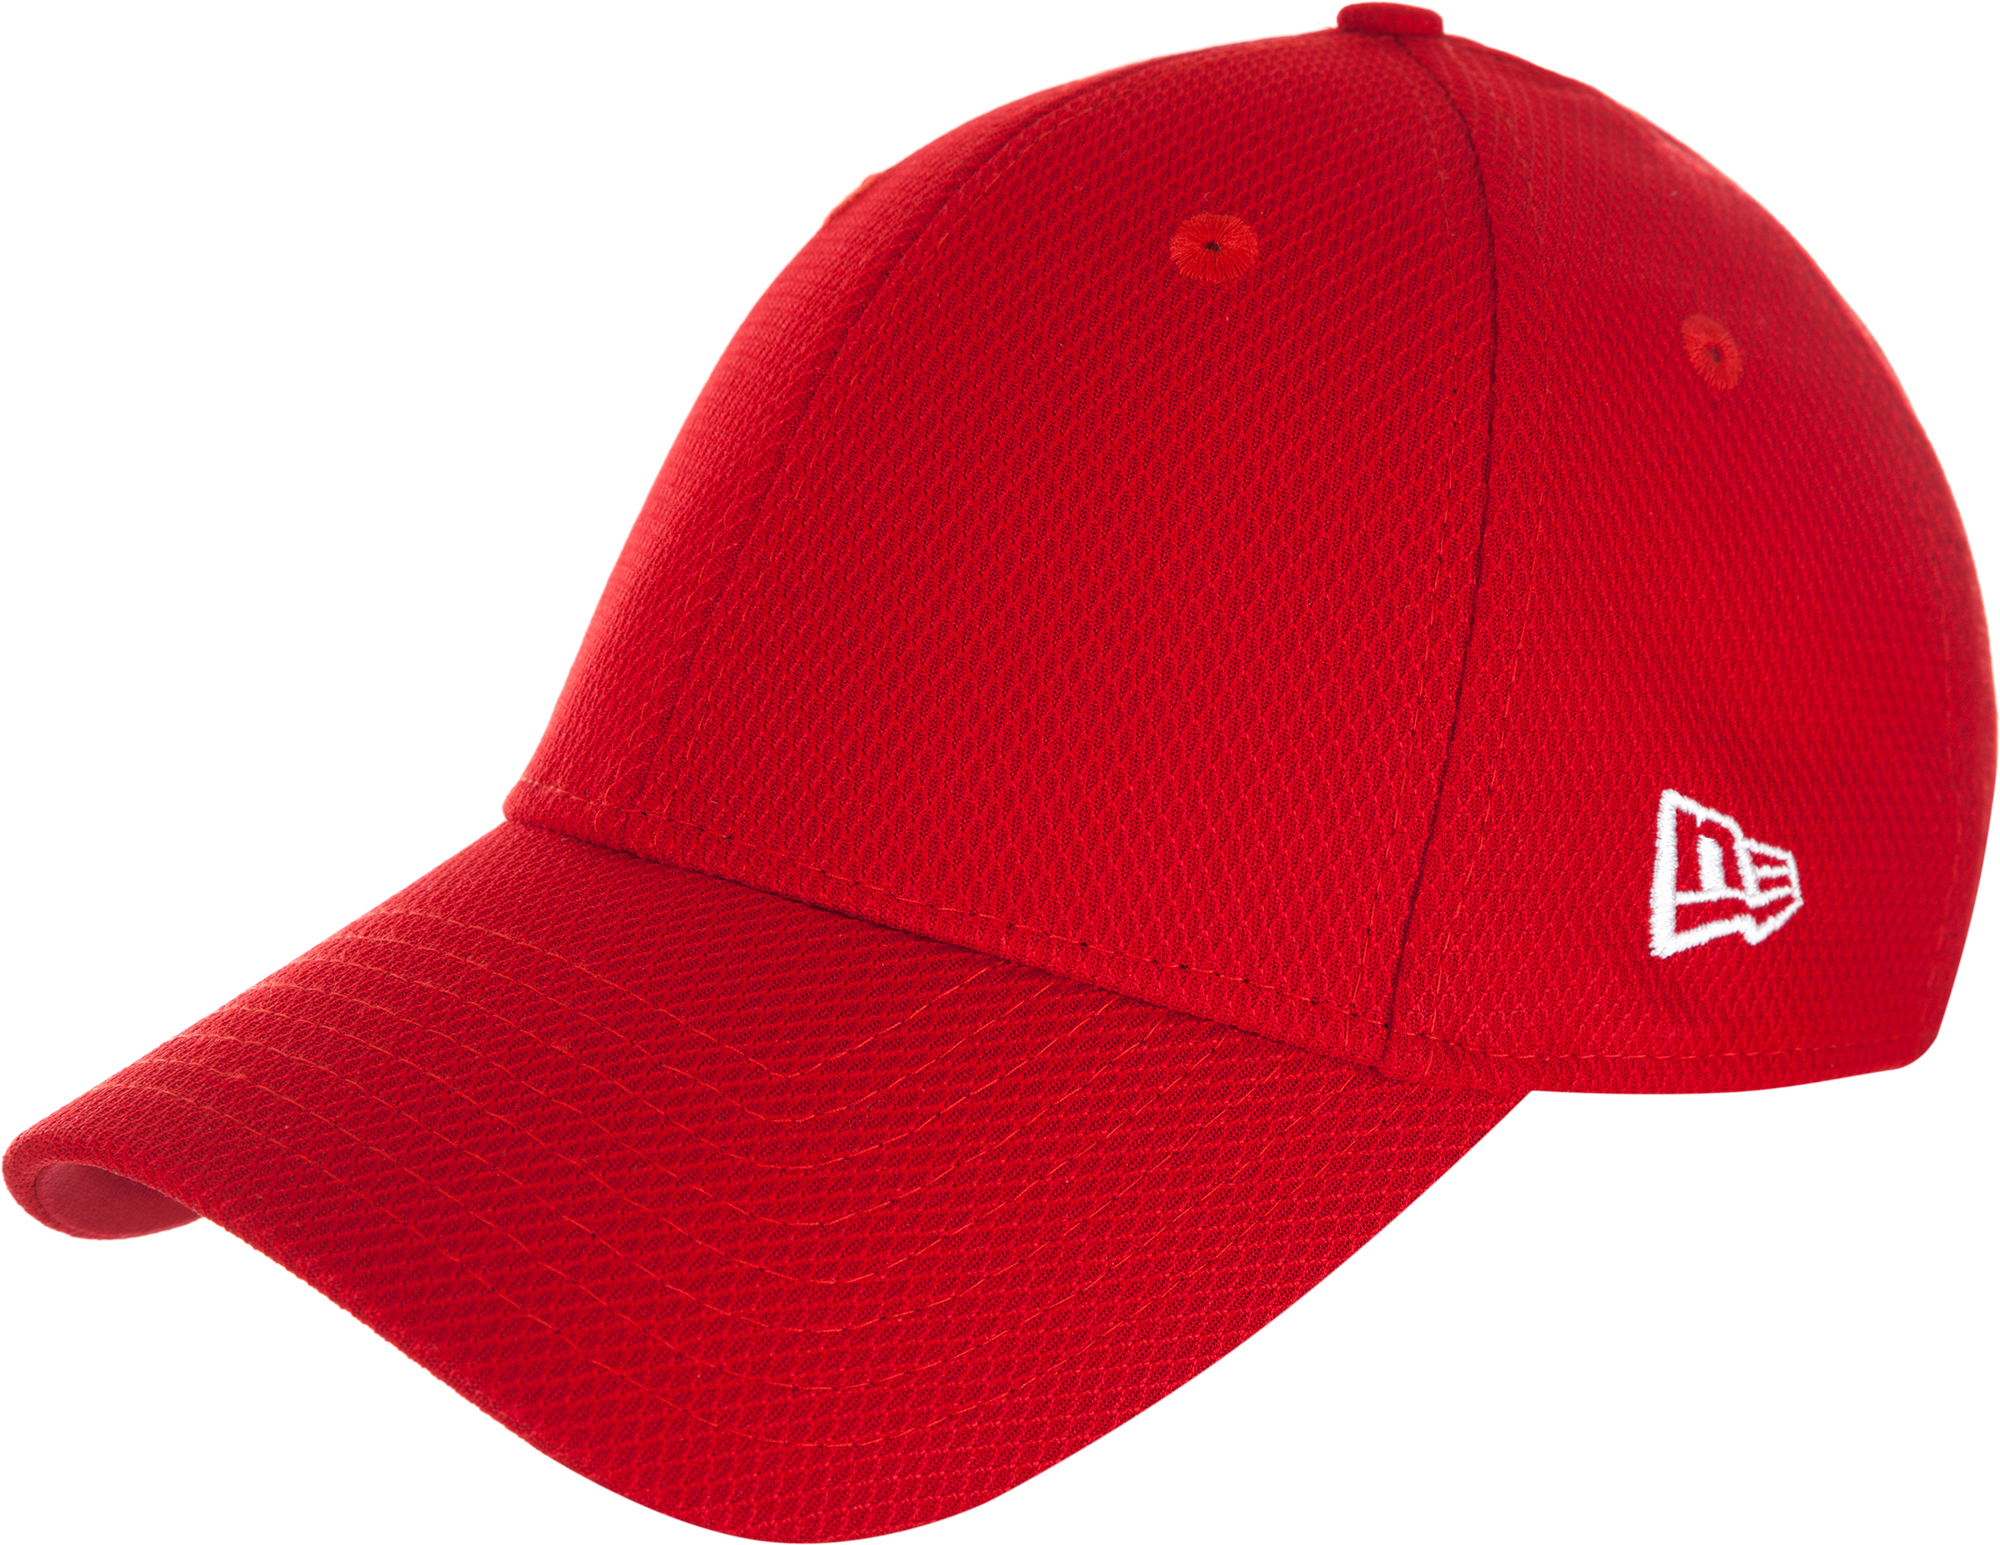 New Era Бейсболка New Era Lic 234 9Forty Diamond new era бейсболка мужская new era